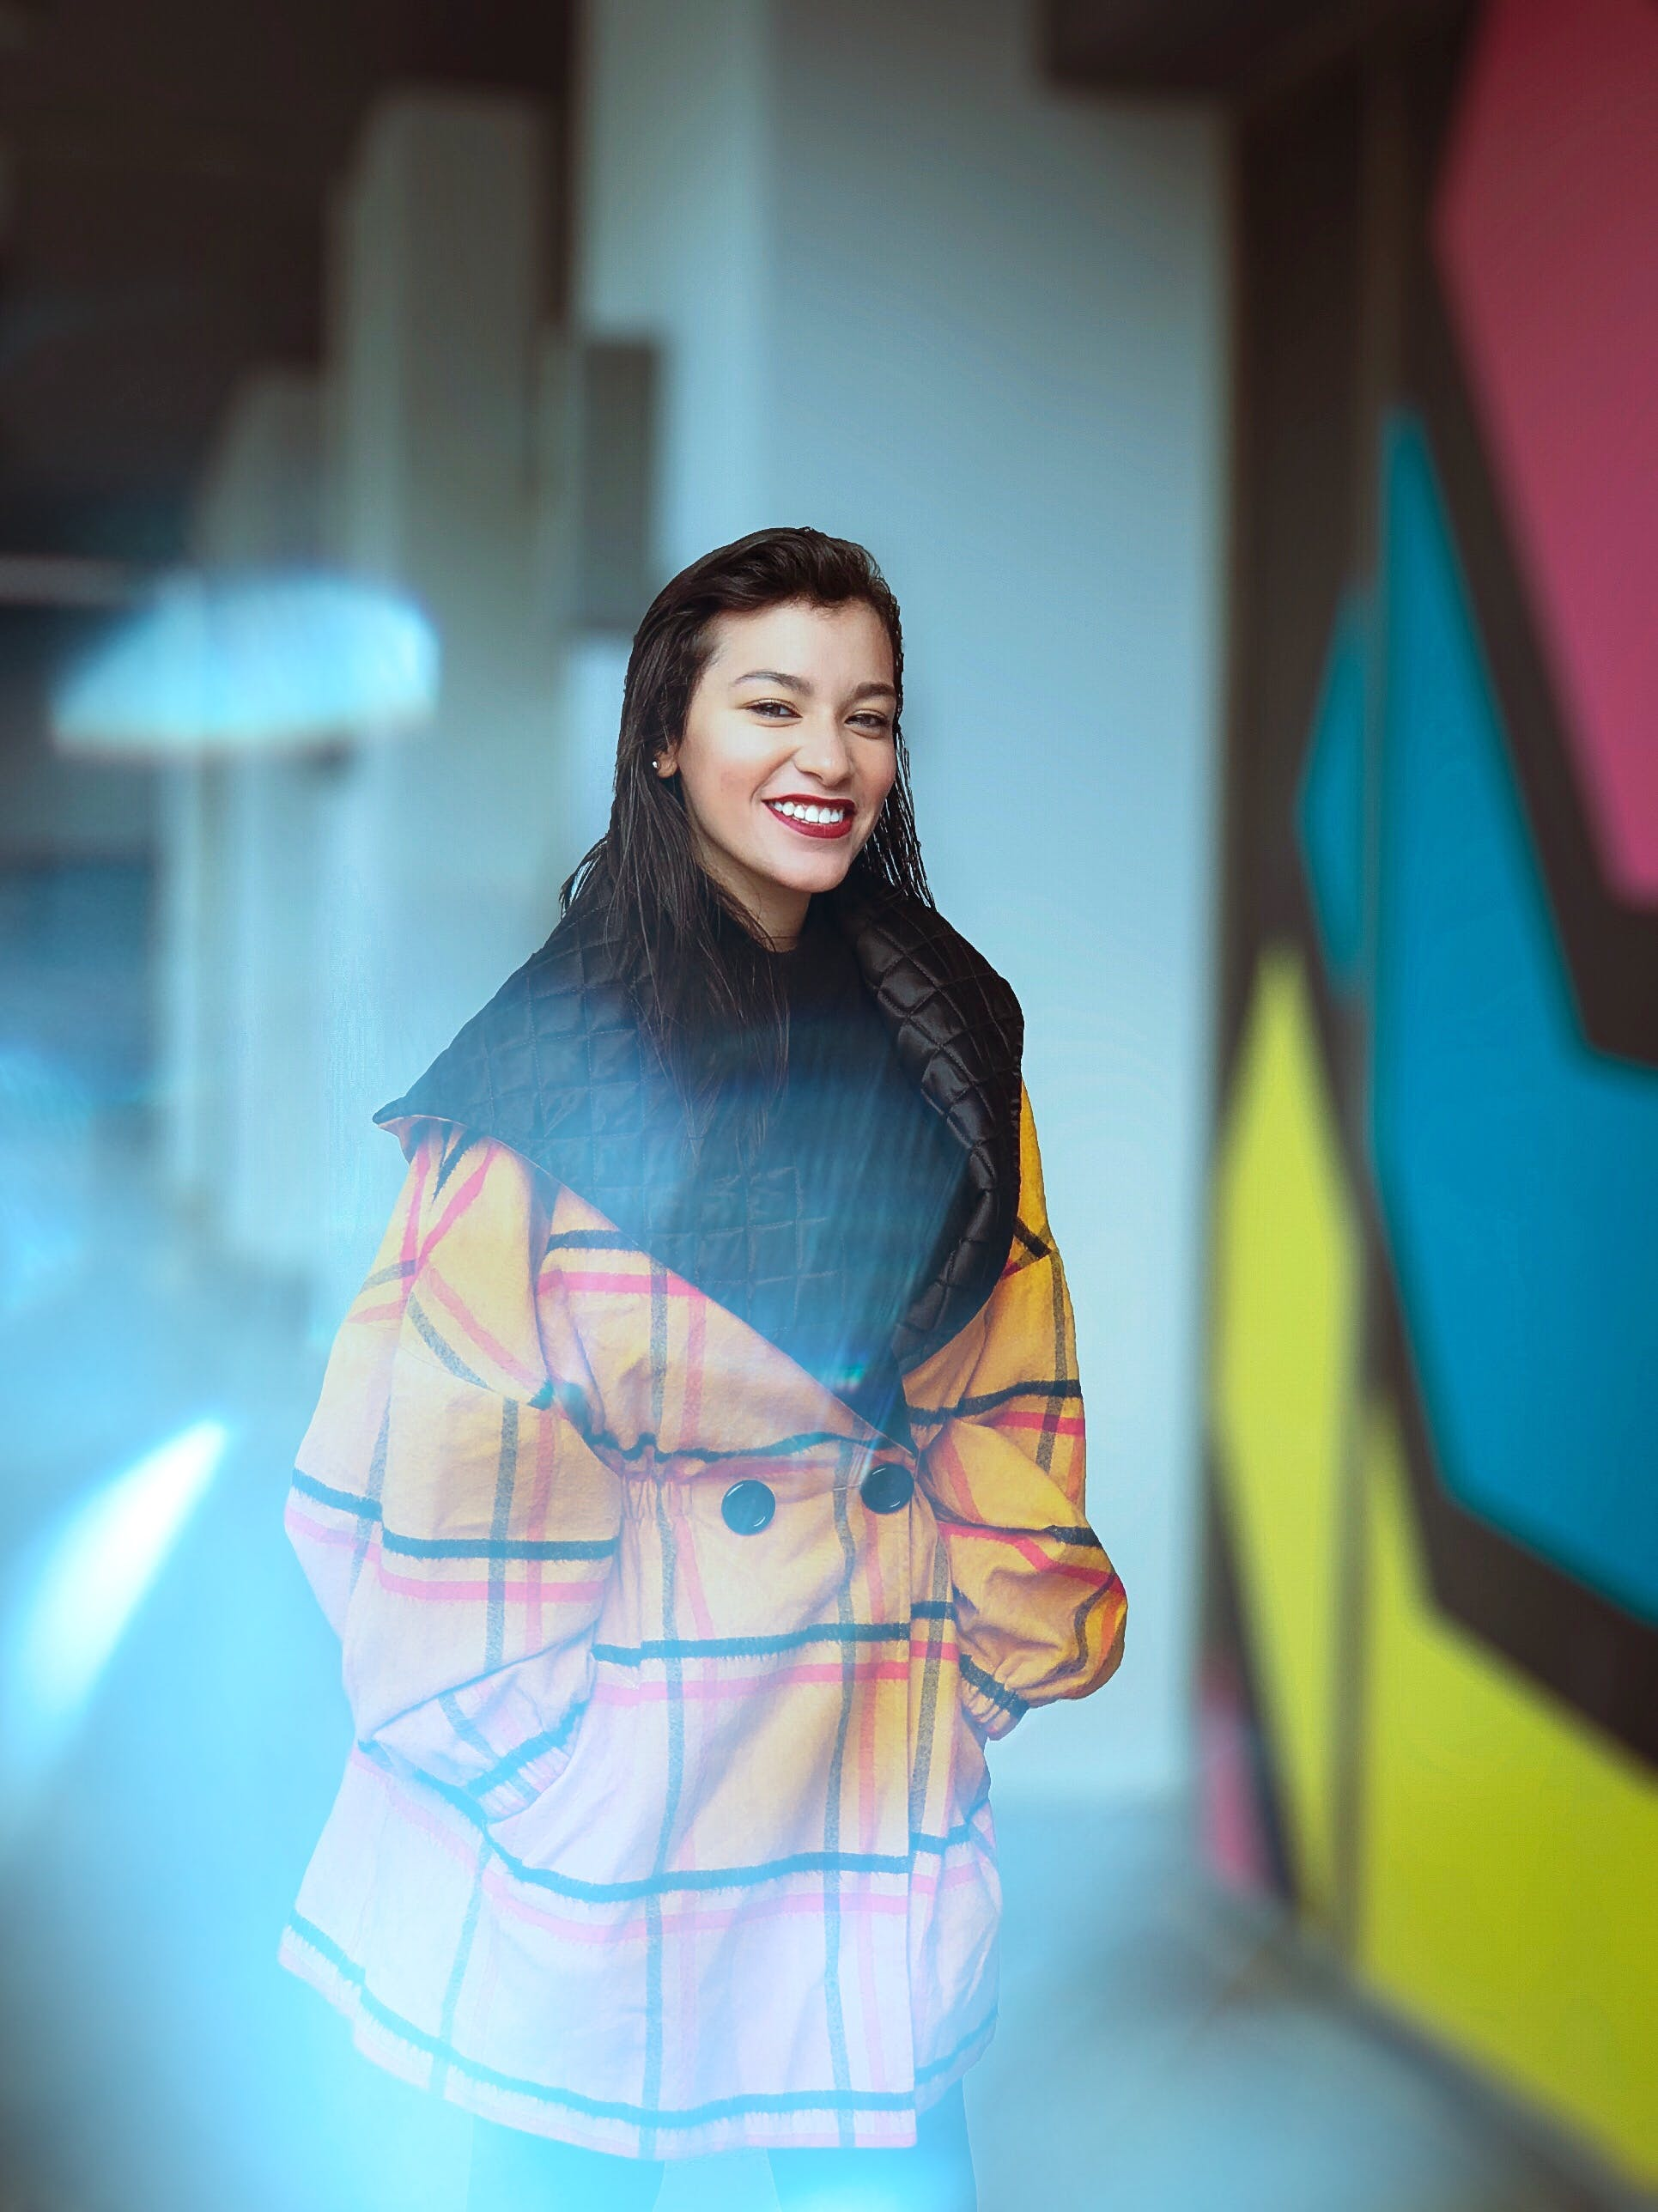 Woman Wearing Yellow Coat Smiling Near Wall